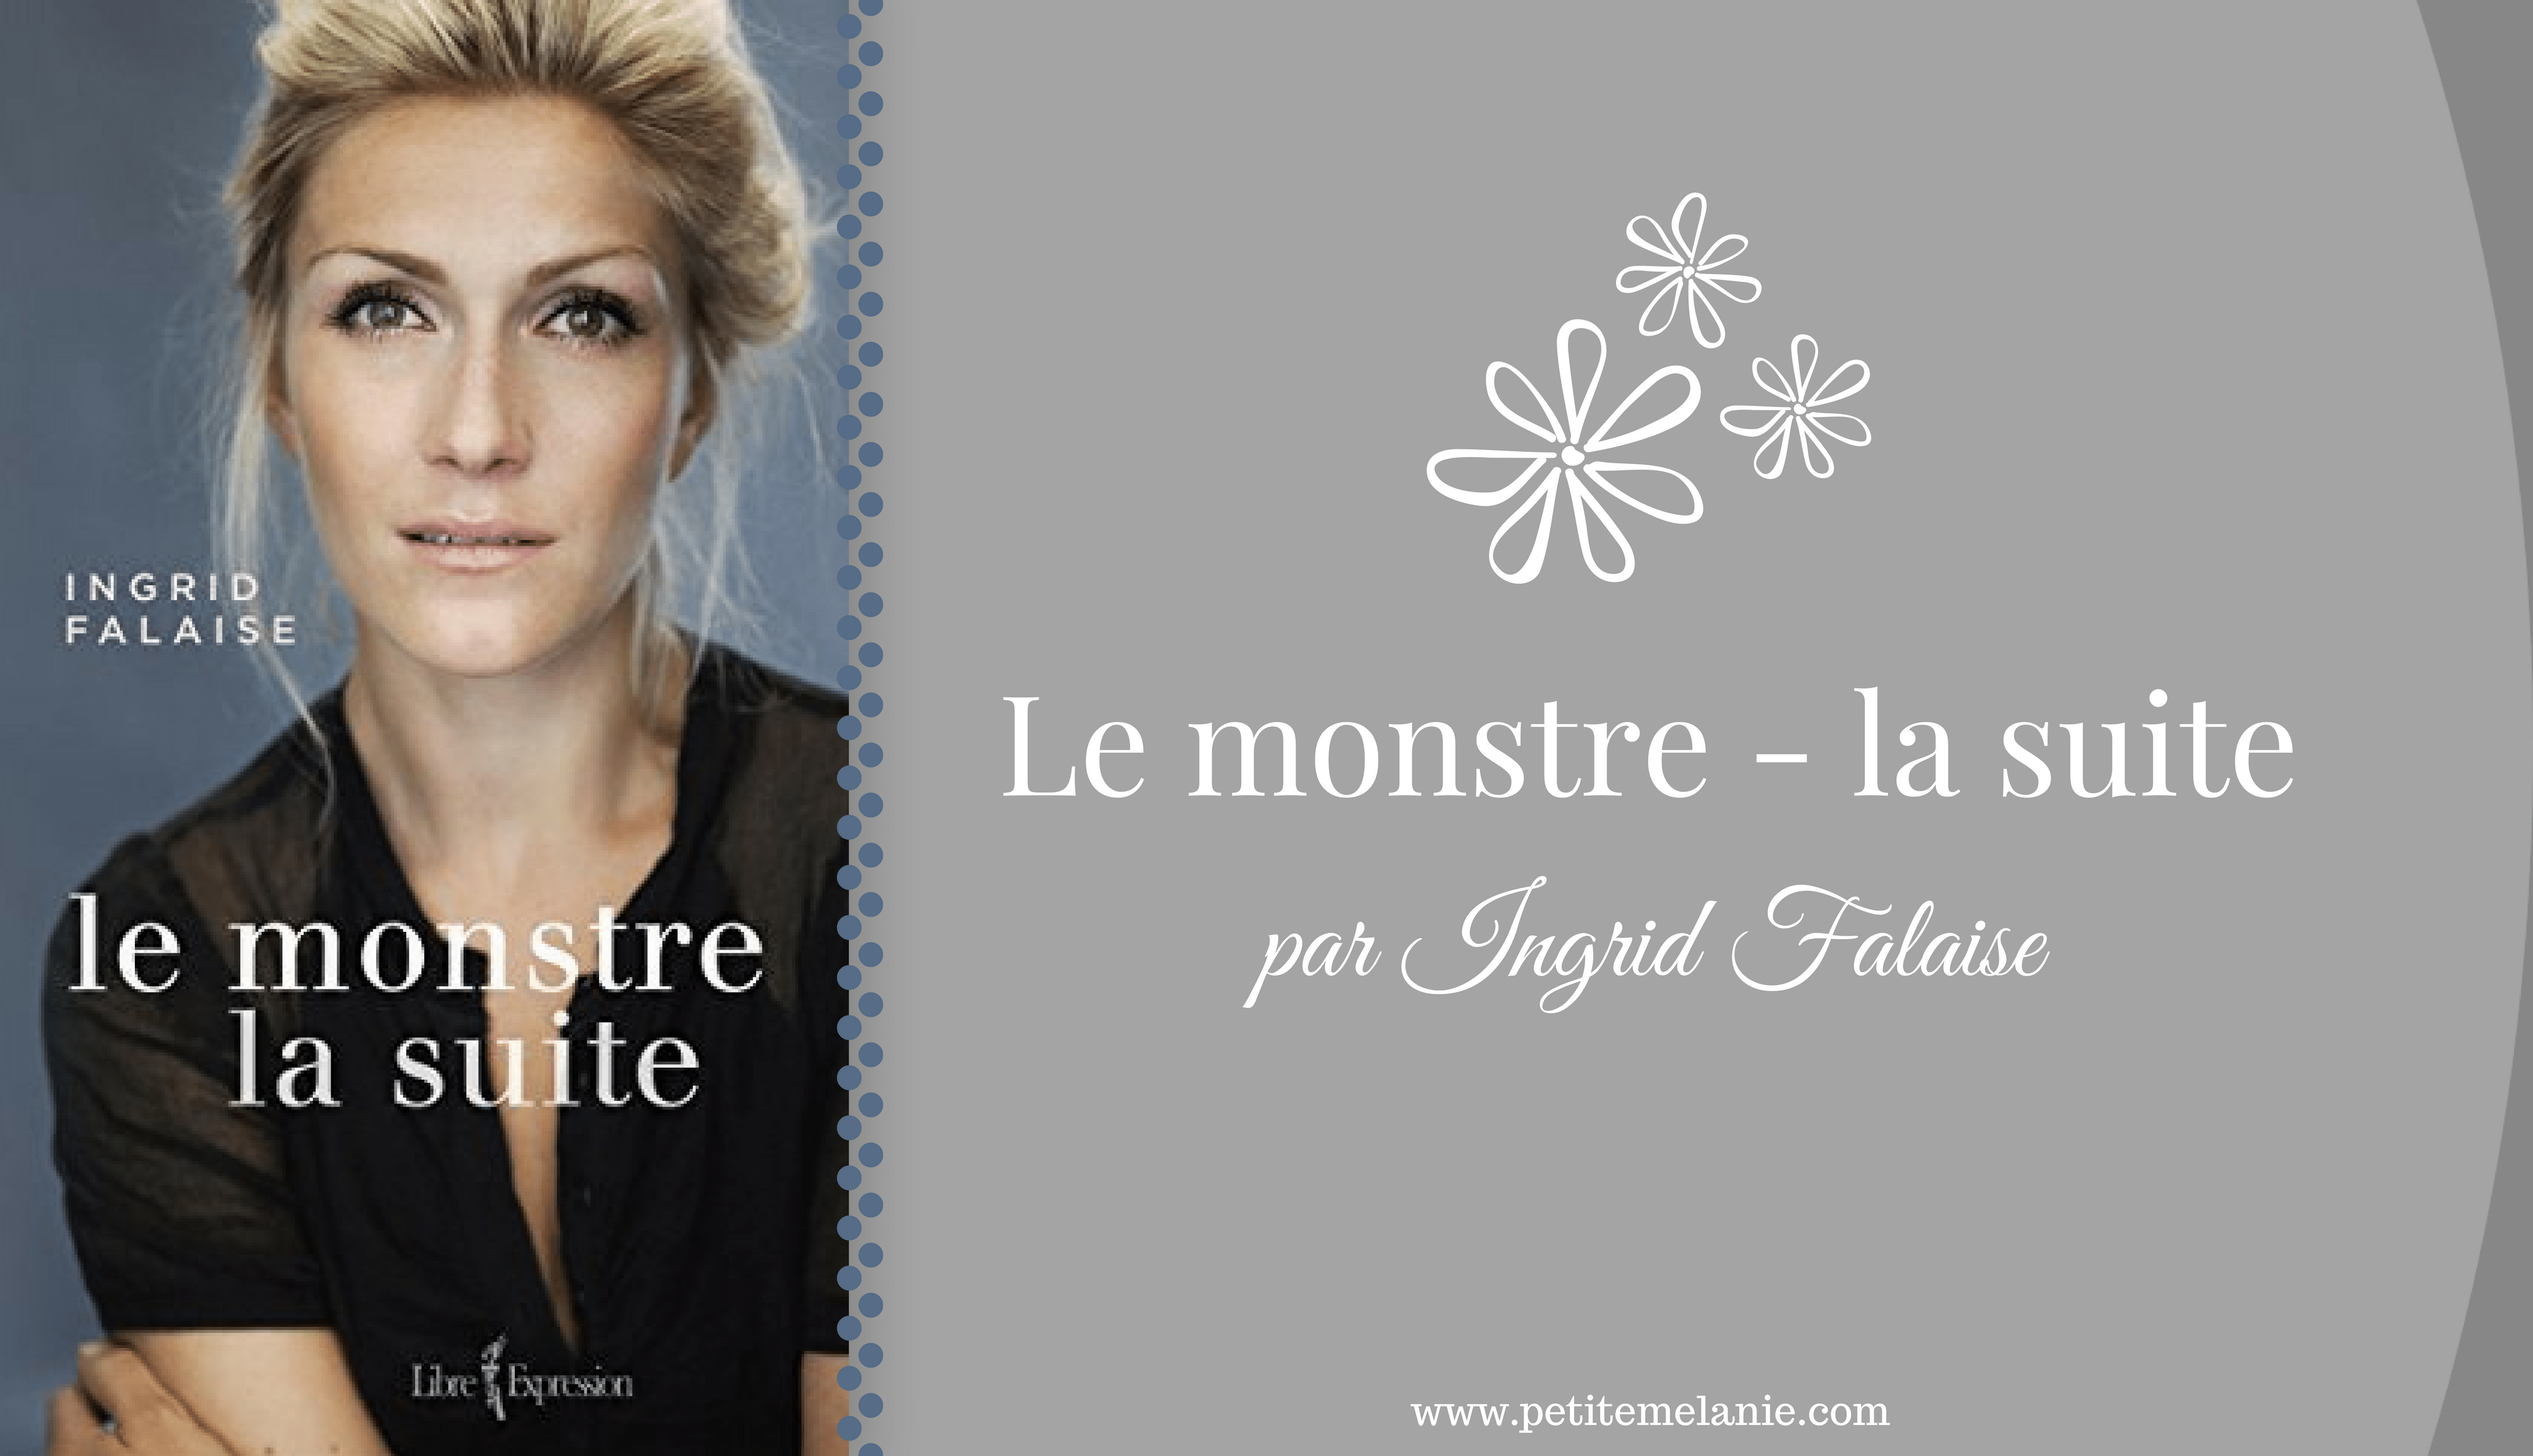 Le monstre - la suite ingrid falaise